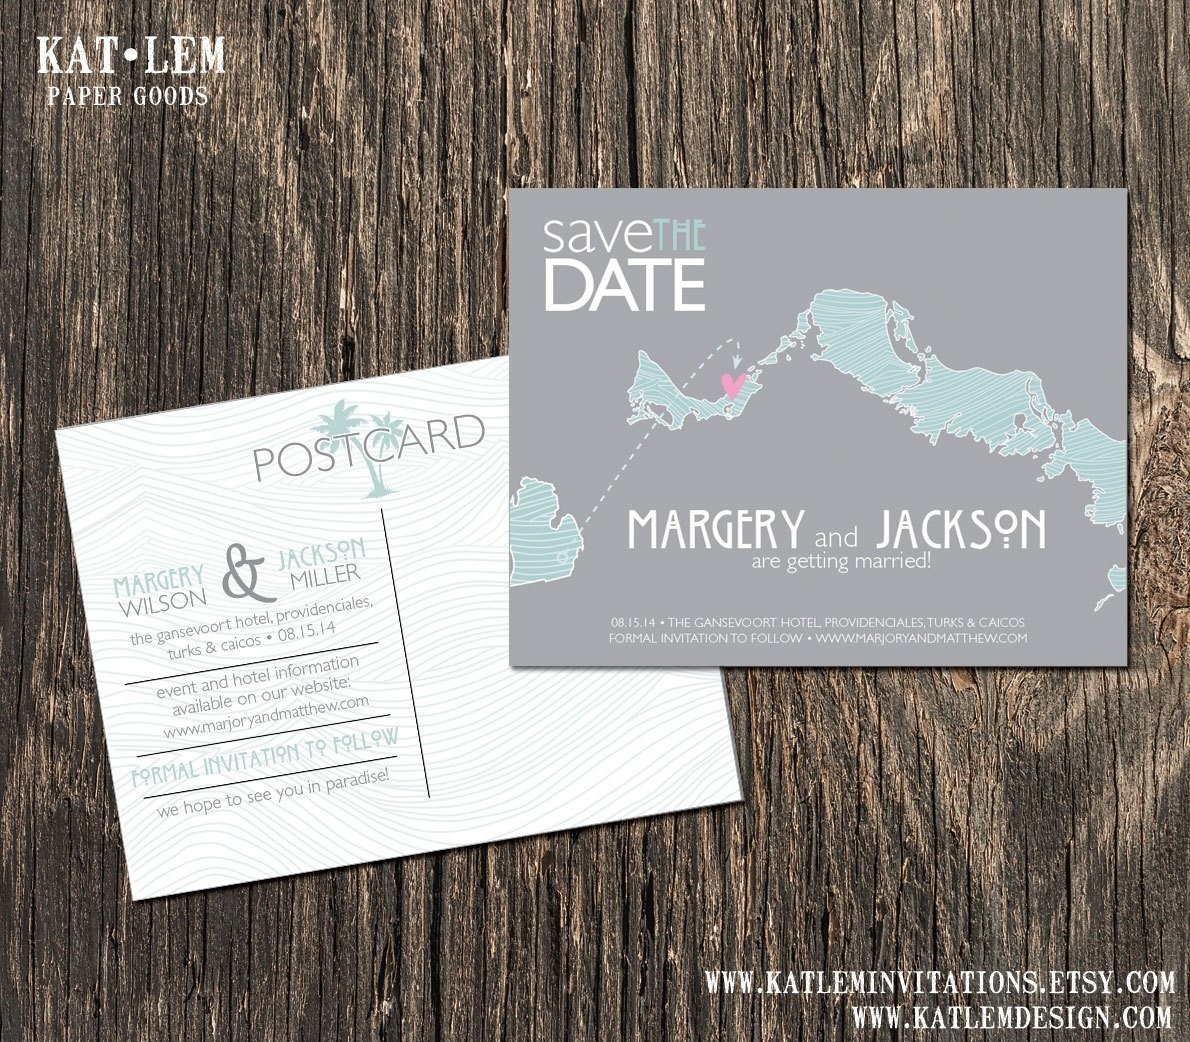 10 Most Popular Wedding Save The Dates Ideas nice ideas destination wedding save the date postcards rectangular 2020